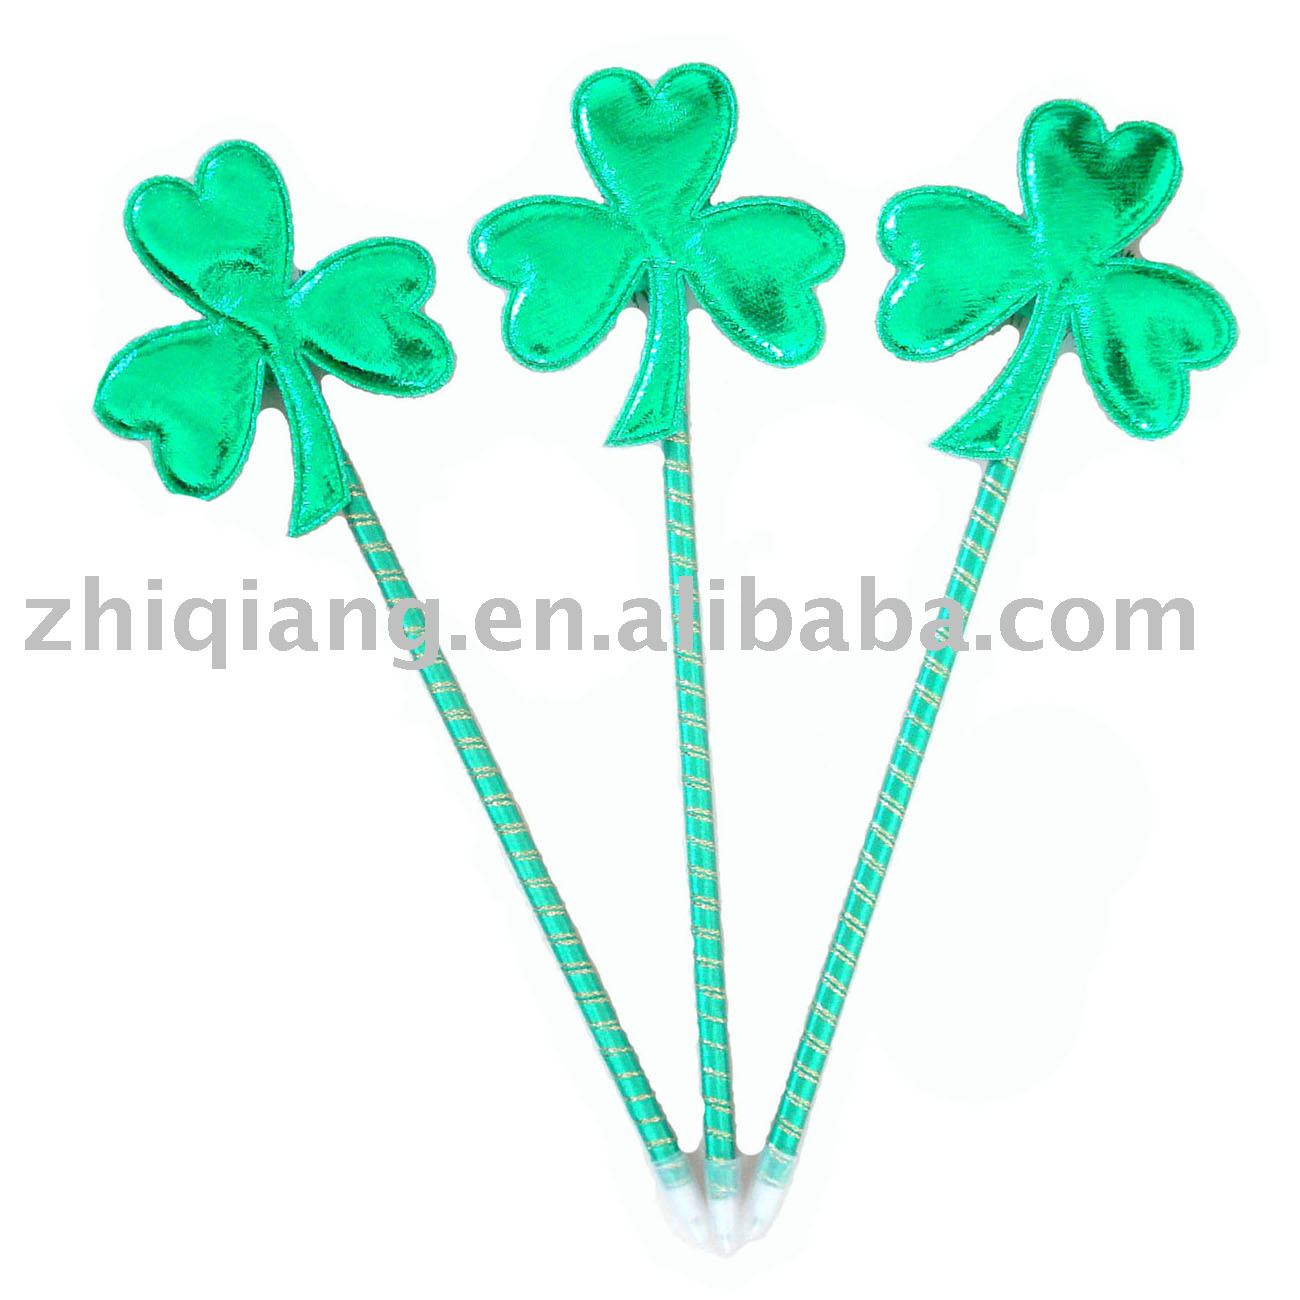 2016 artifical wholesale low price popular green shamrock ball pen